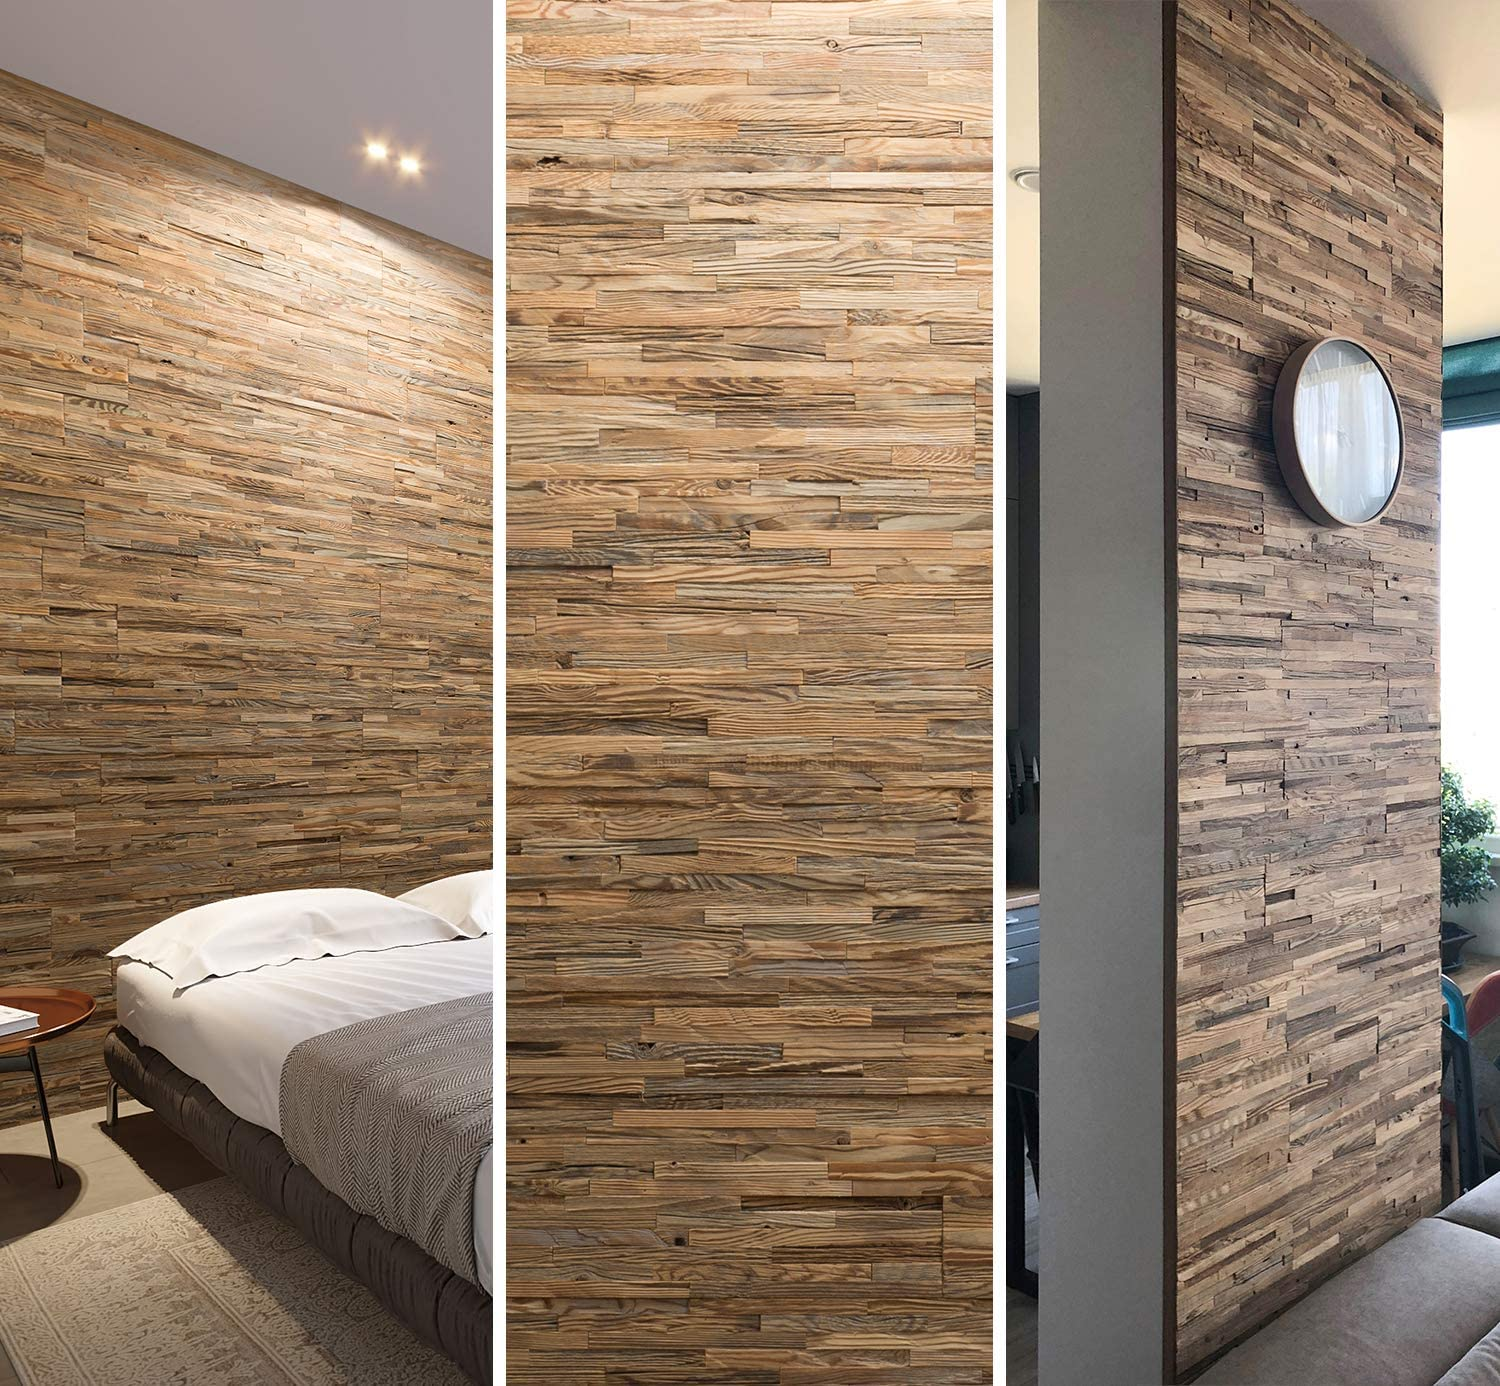 Wooden Wall Design Wall Panel Brut Decorative Wood Tiles For Wall Covering Amazon Co Uk Diy Tools